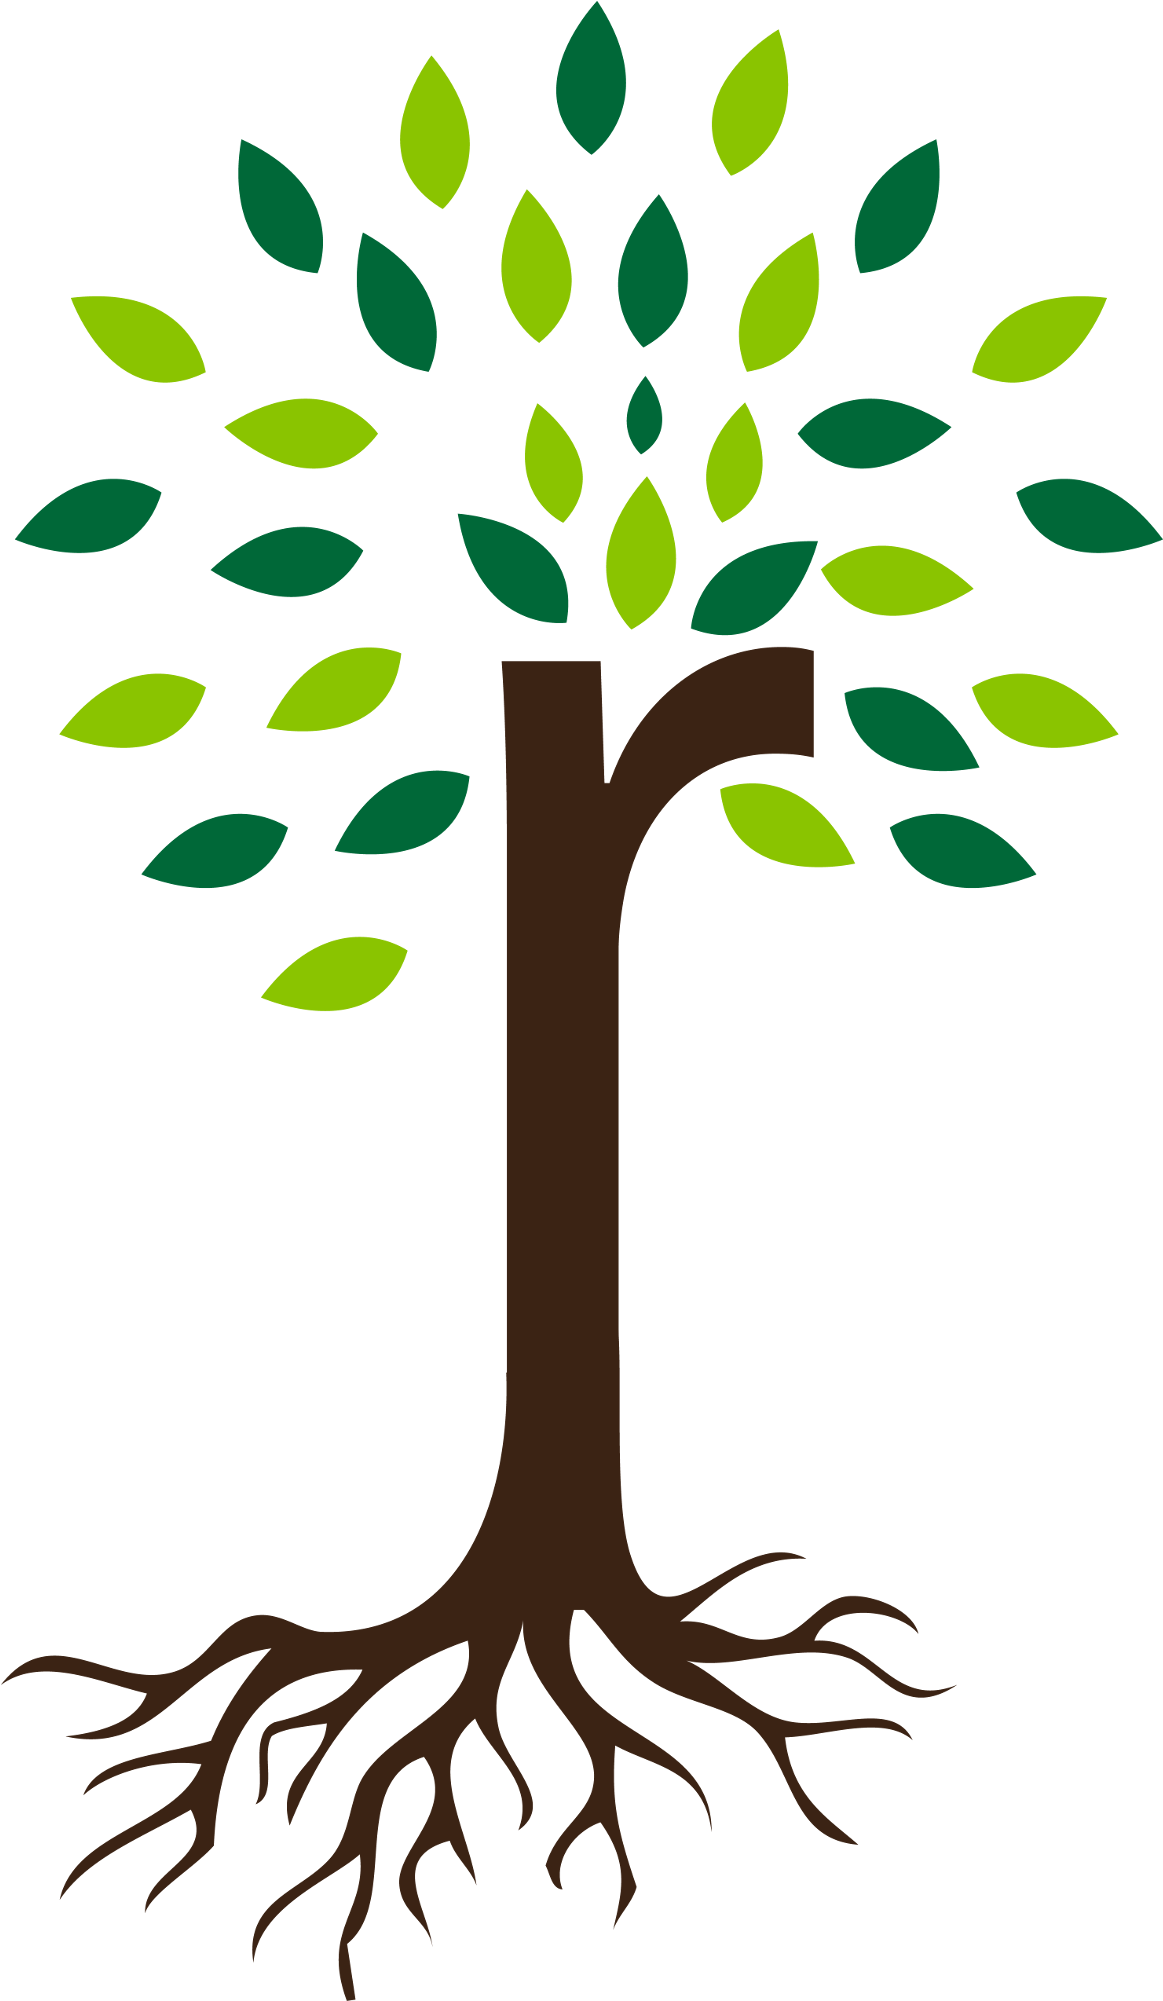 Roots clipart tree icon. Download collection of png